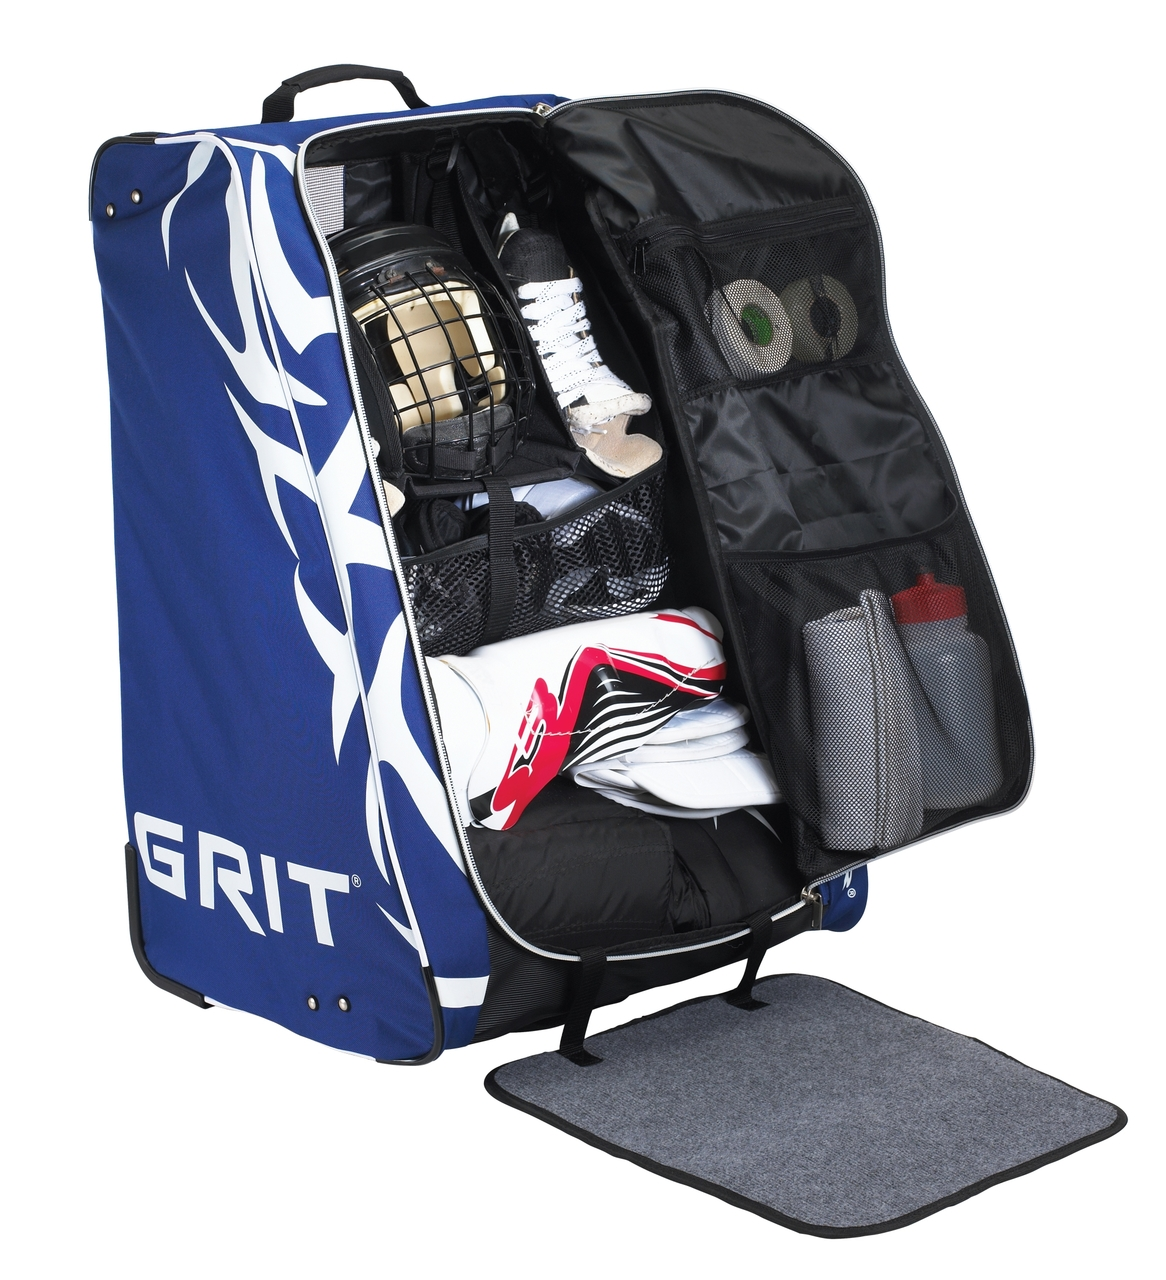 HYFX Junior Hockey Tower Bag